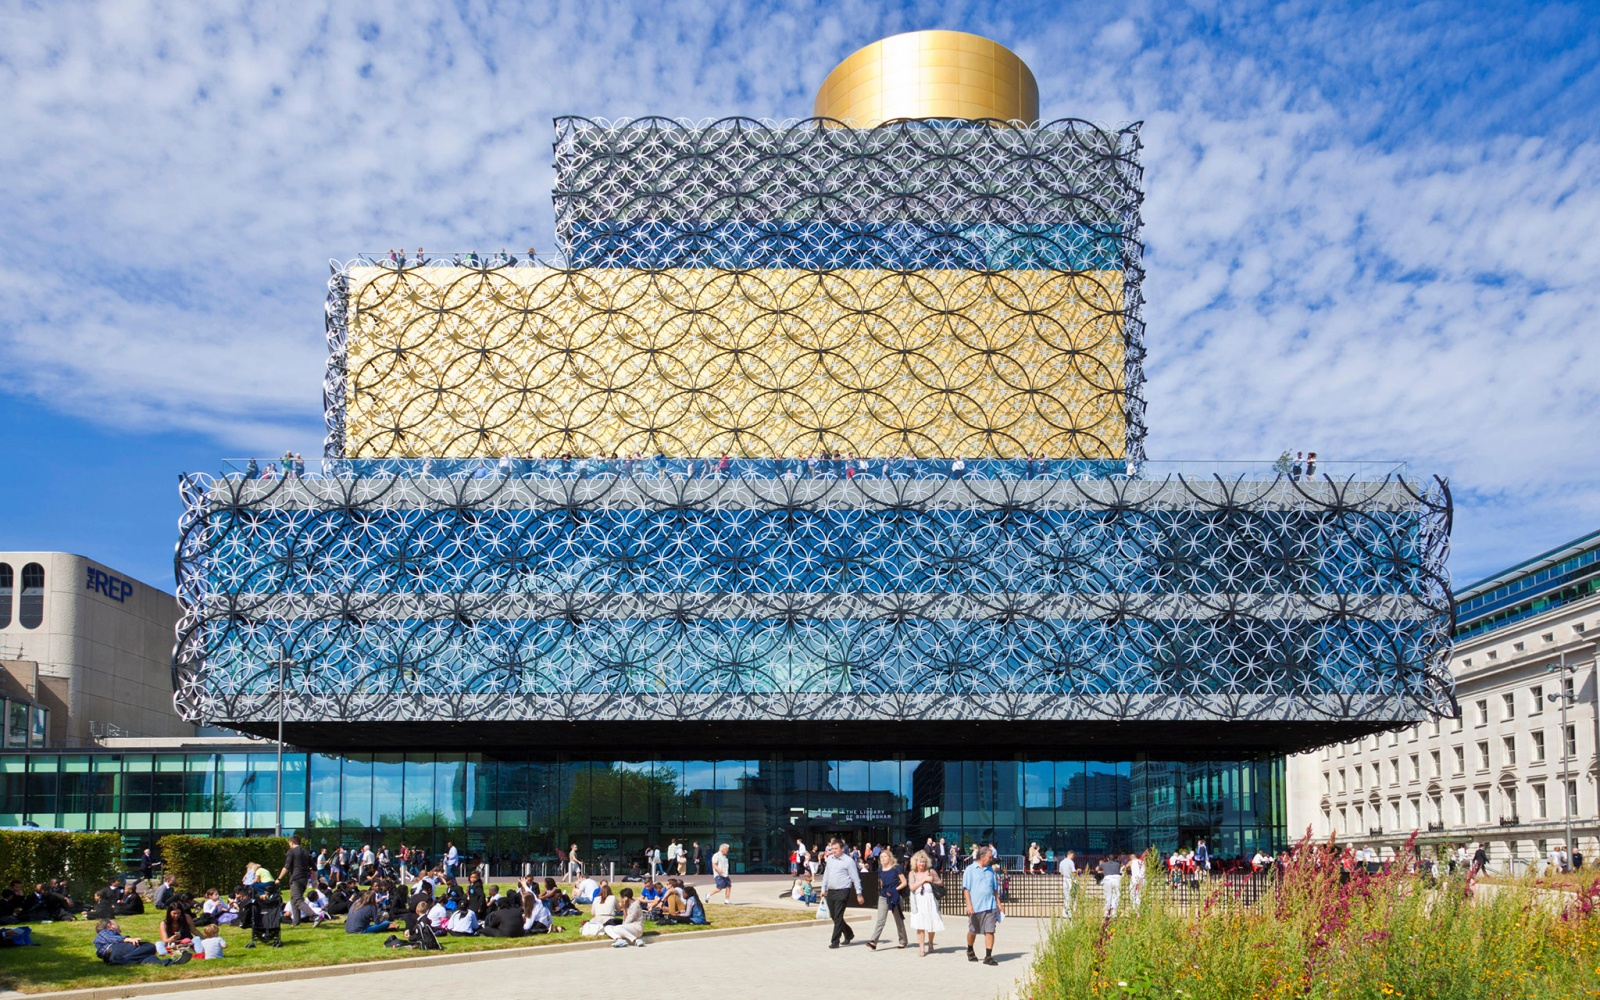 Library of Birmingham, England